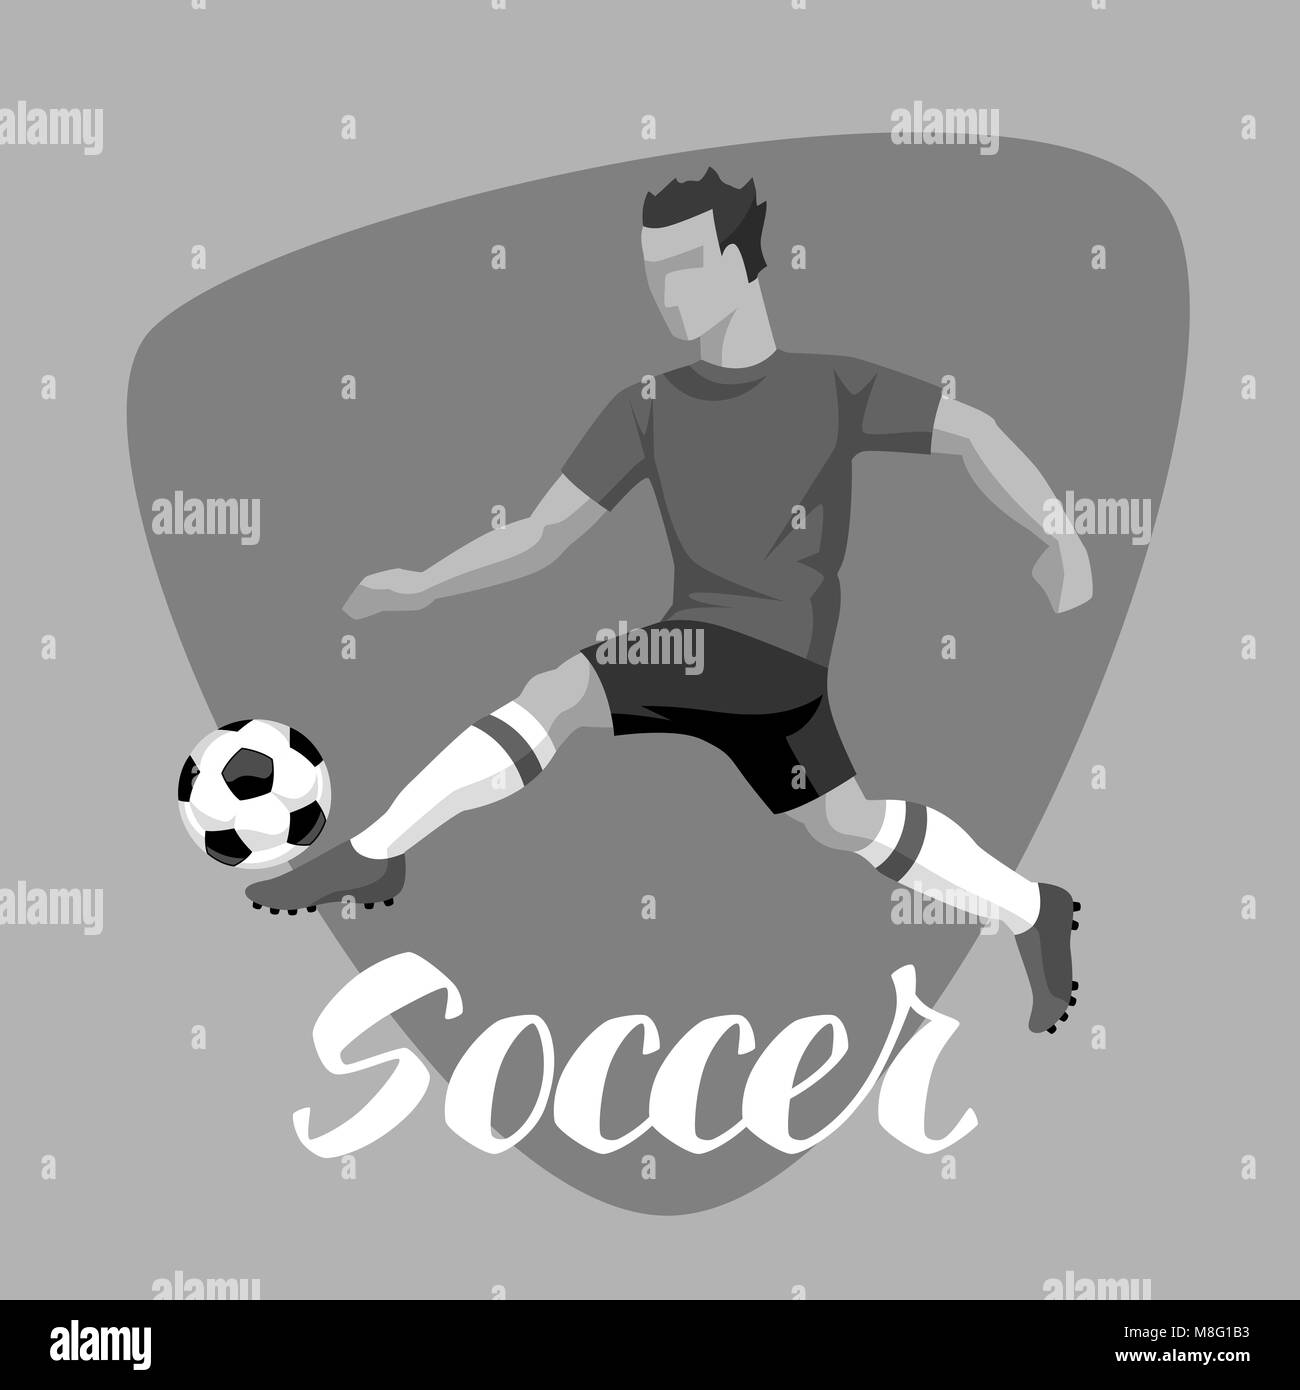 Soccer player with ball. Sports football illustration - Stock Image